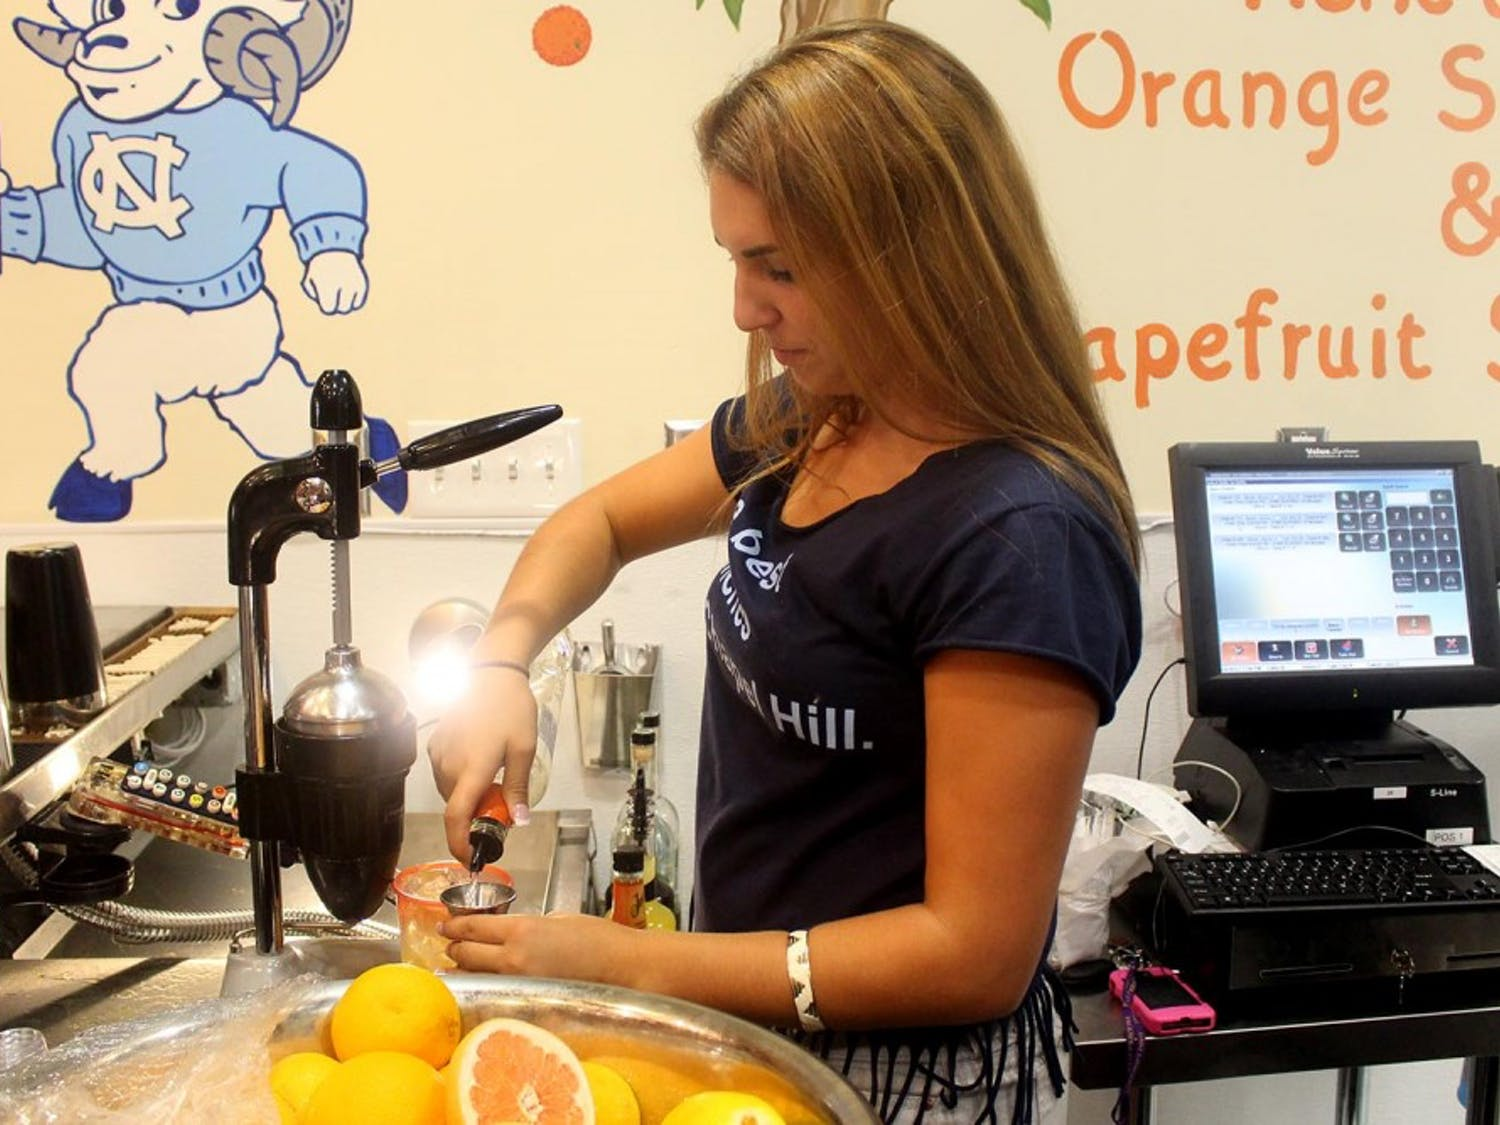 Sup Dogs on Franklin Street opened Monday morning. Waitresses work on the signature orange crush behind a full bar inside the restaurant.